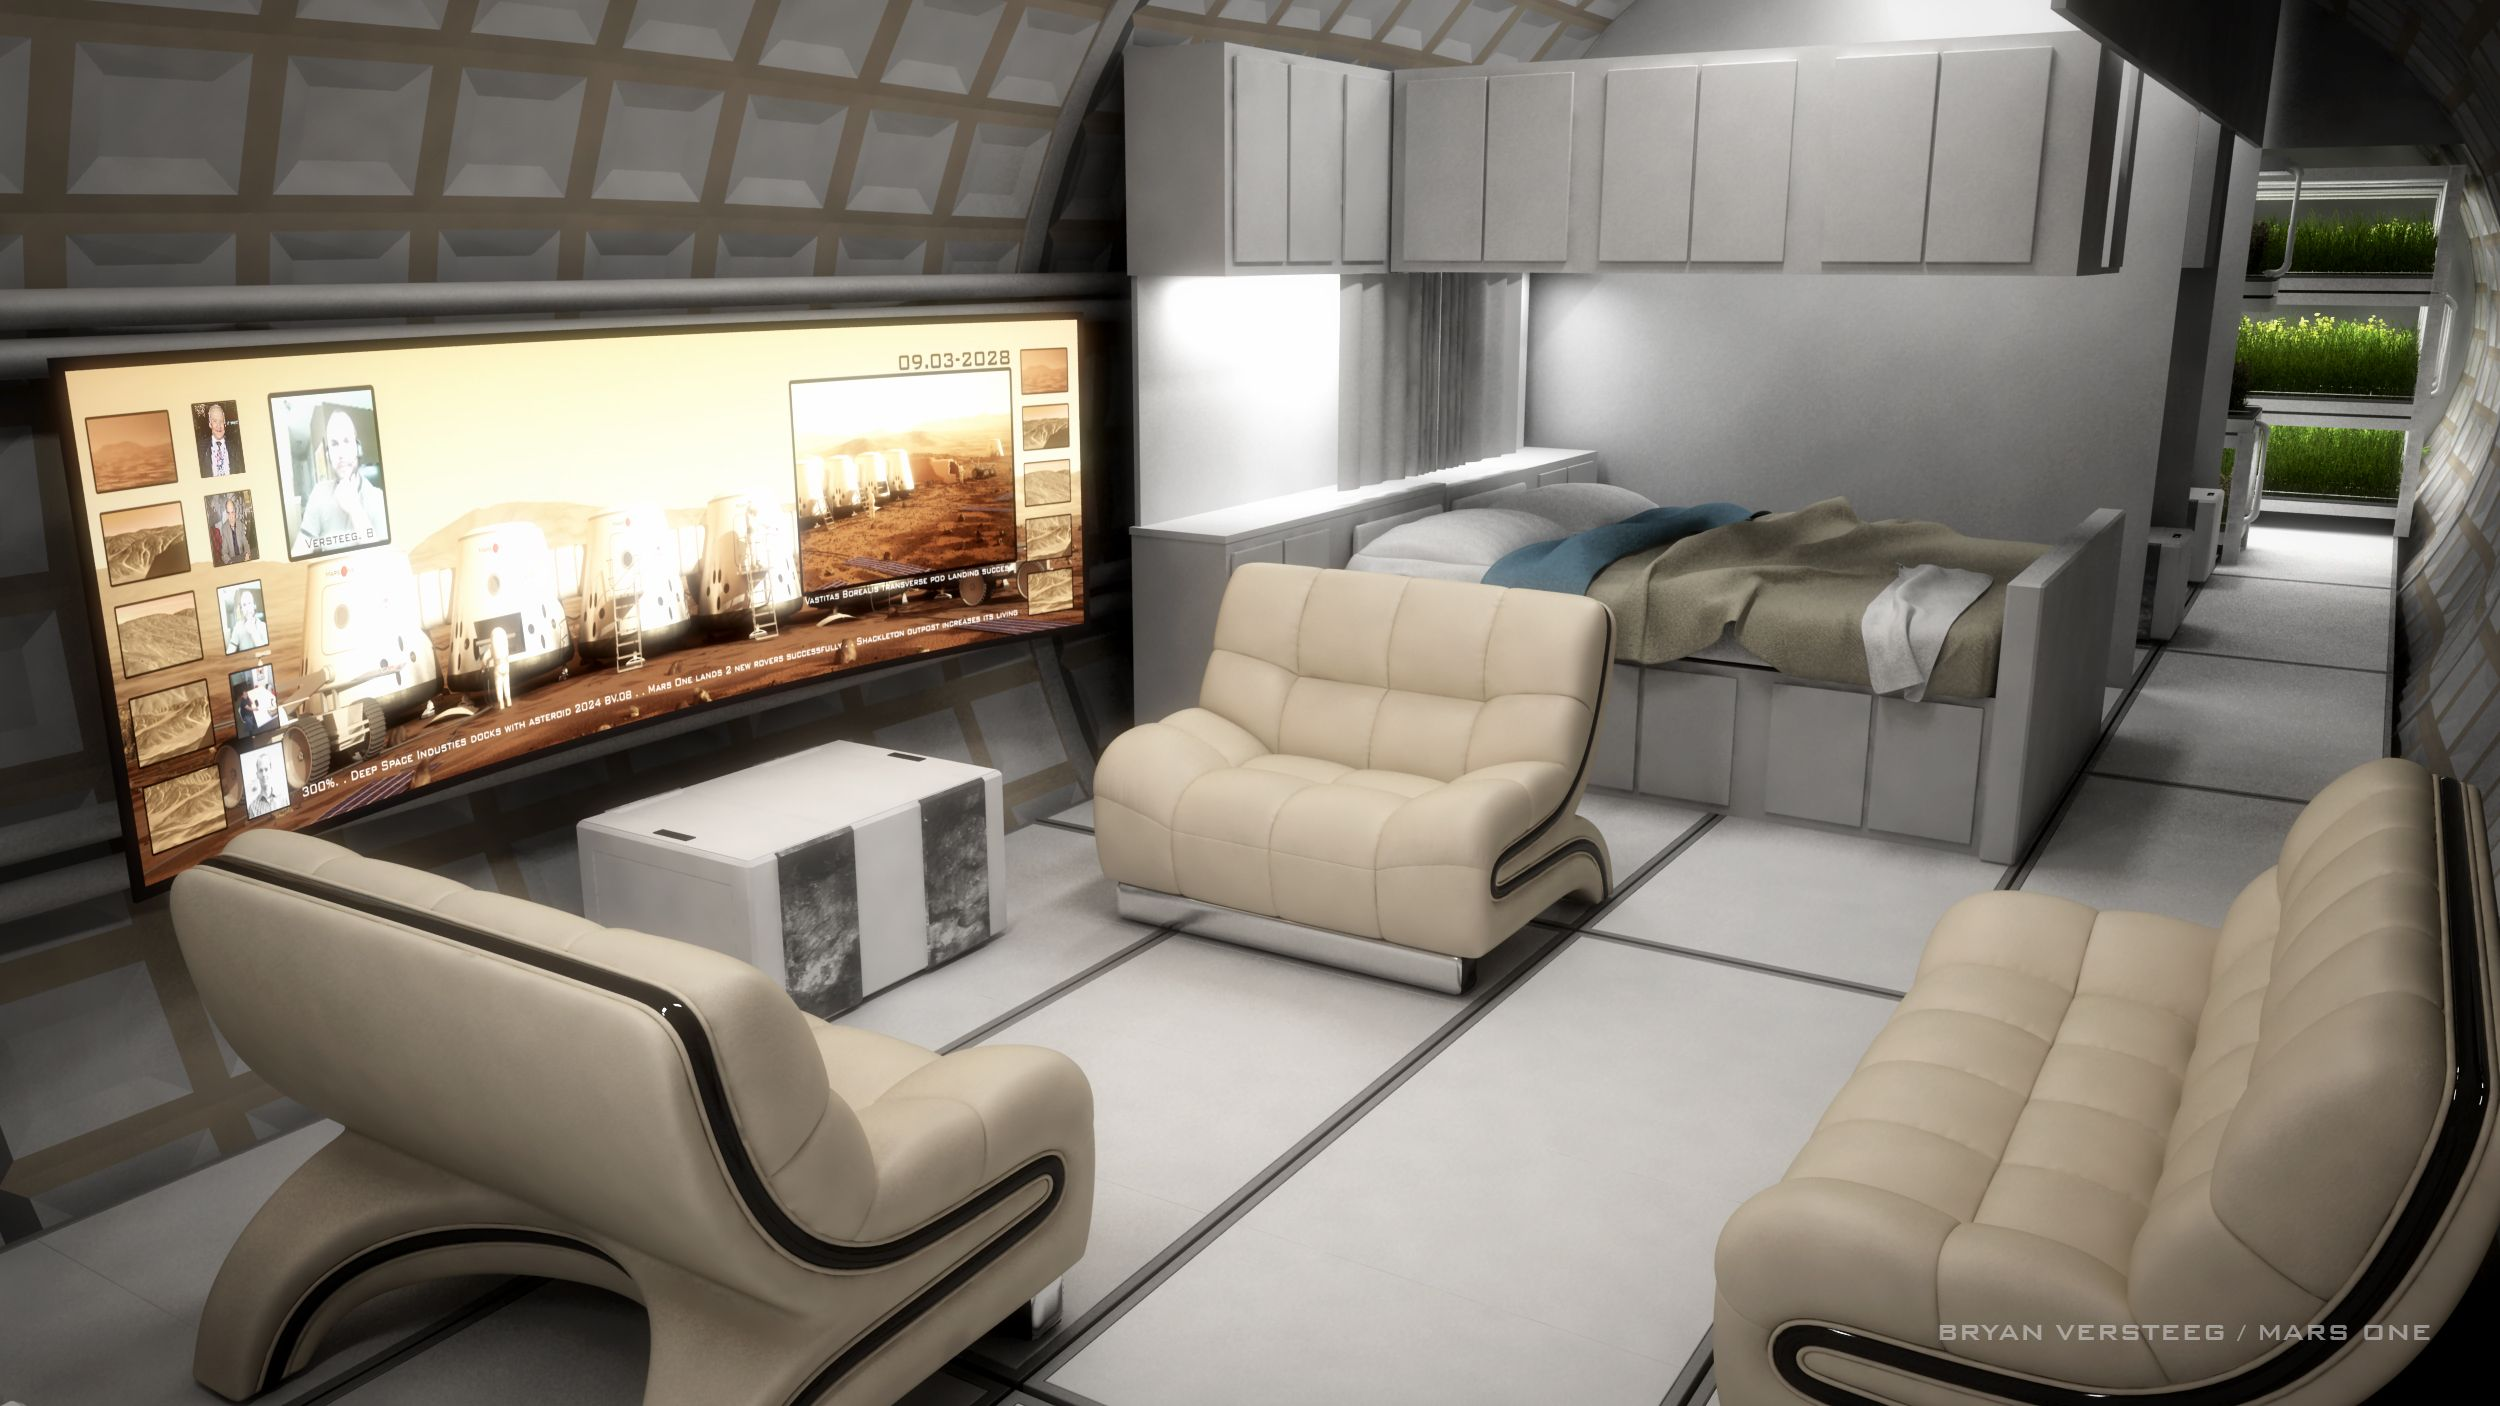 A conceptual design of the living area of the Mars One ...